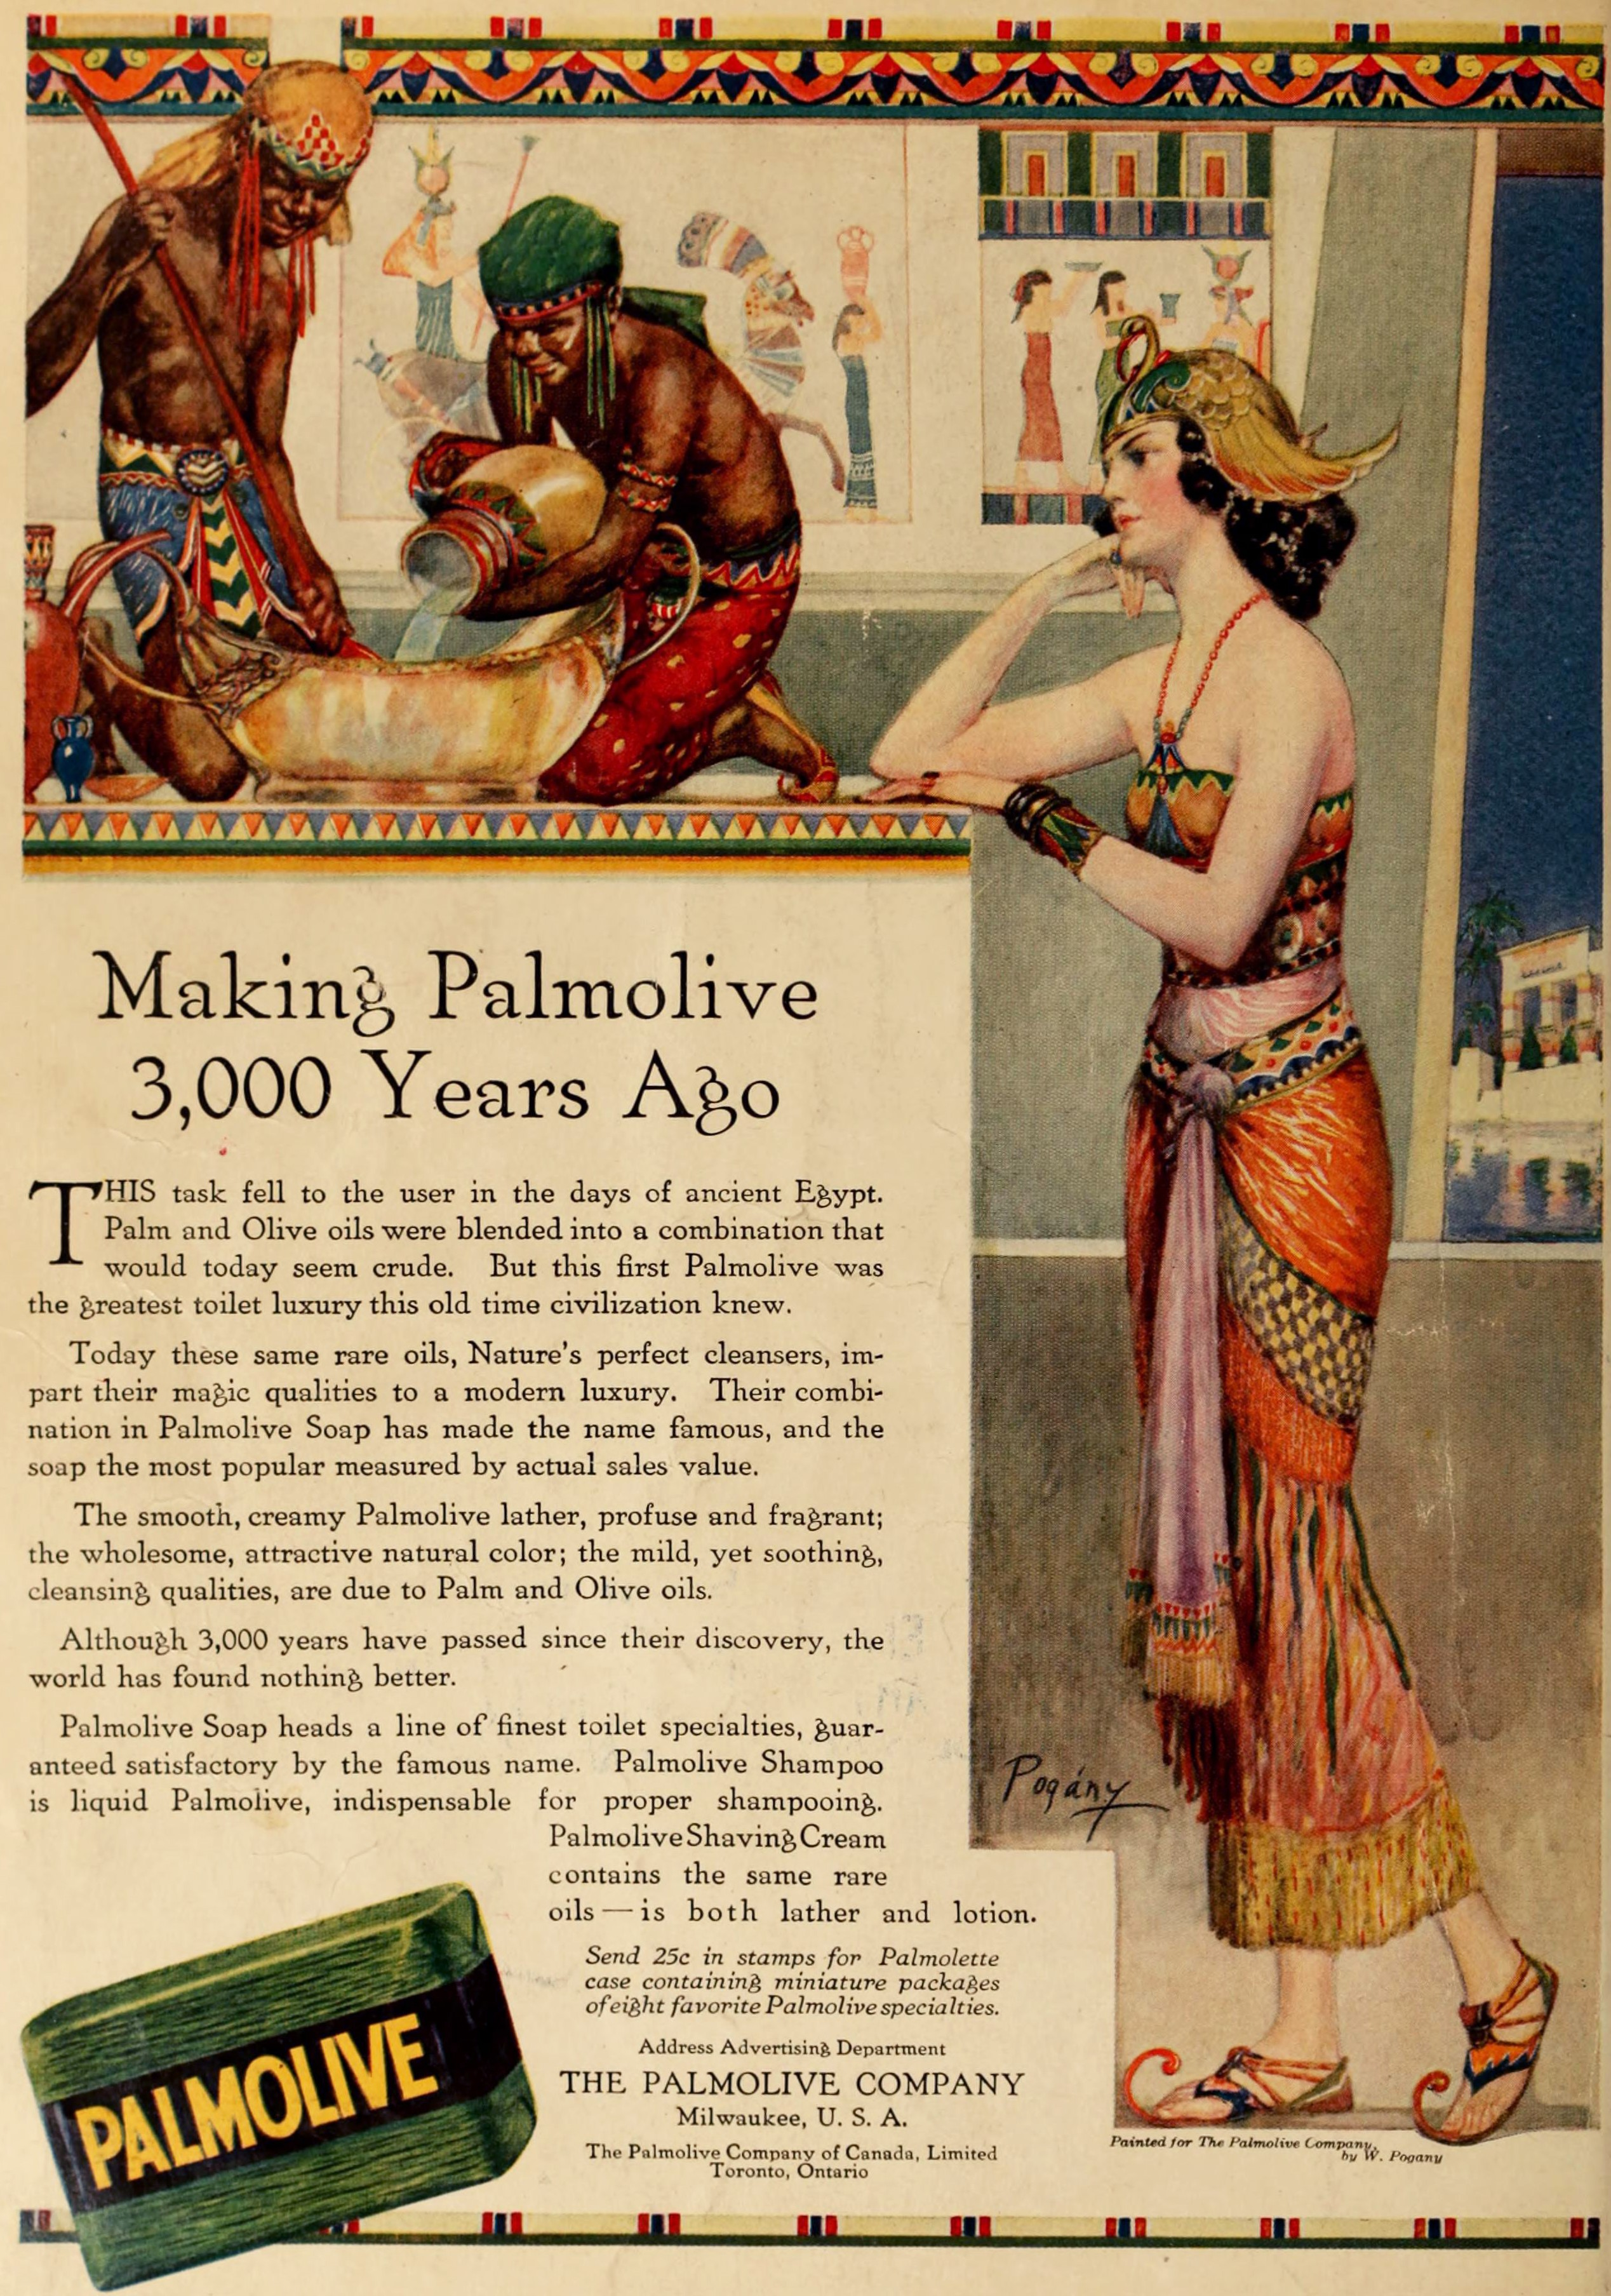 palmolive-soap-ad-circa-1919-making-palmolive-3000-years-ago.jpg